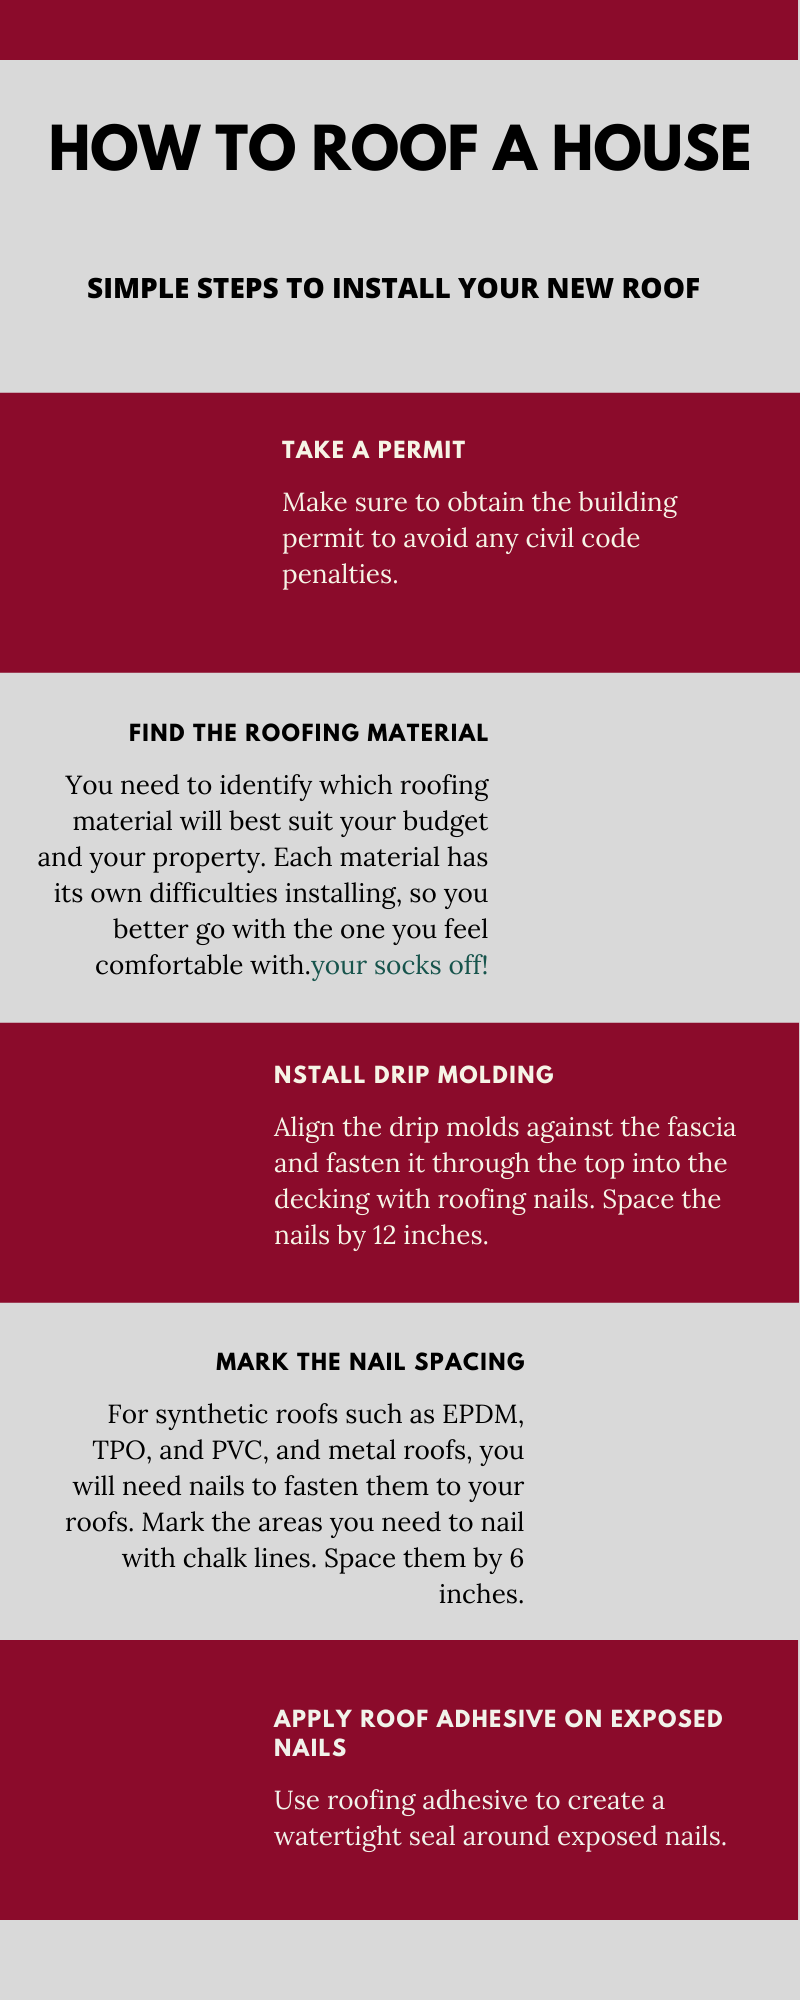 How to roof a house - Infographic